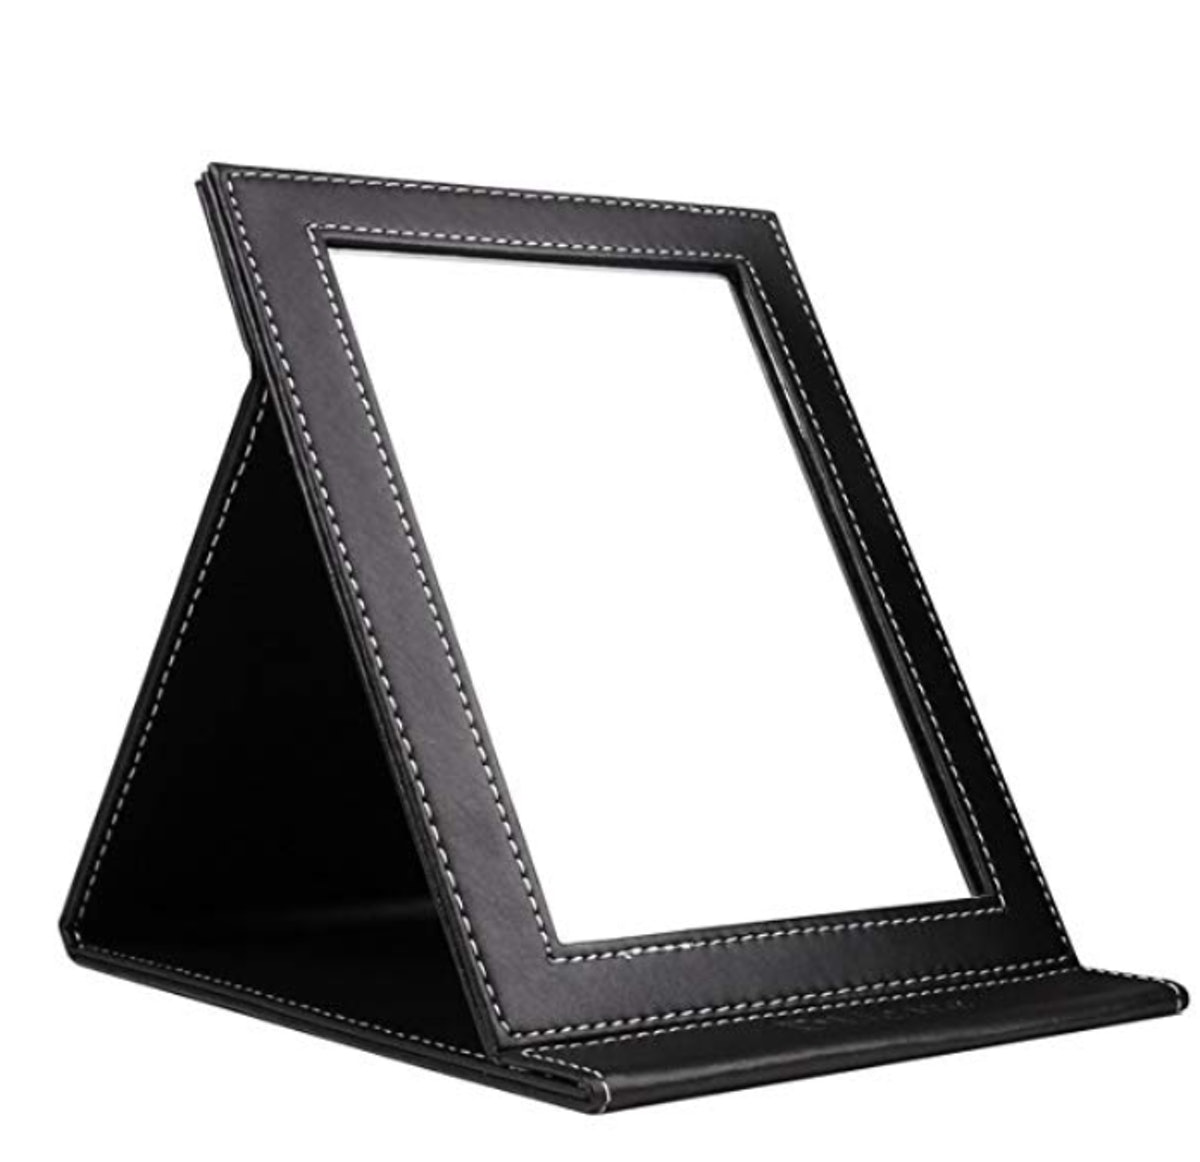 DUcare Portable Folding Vanity Mirror with Stand